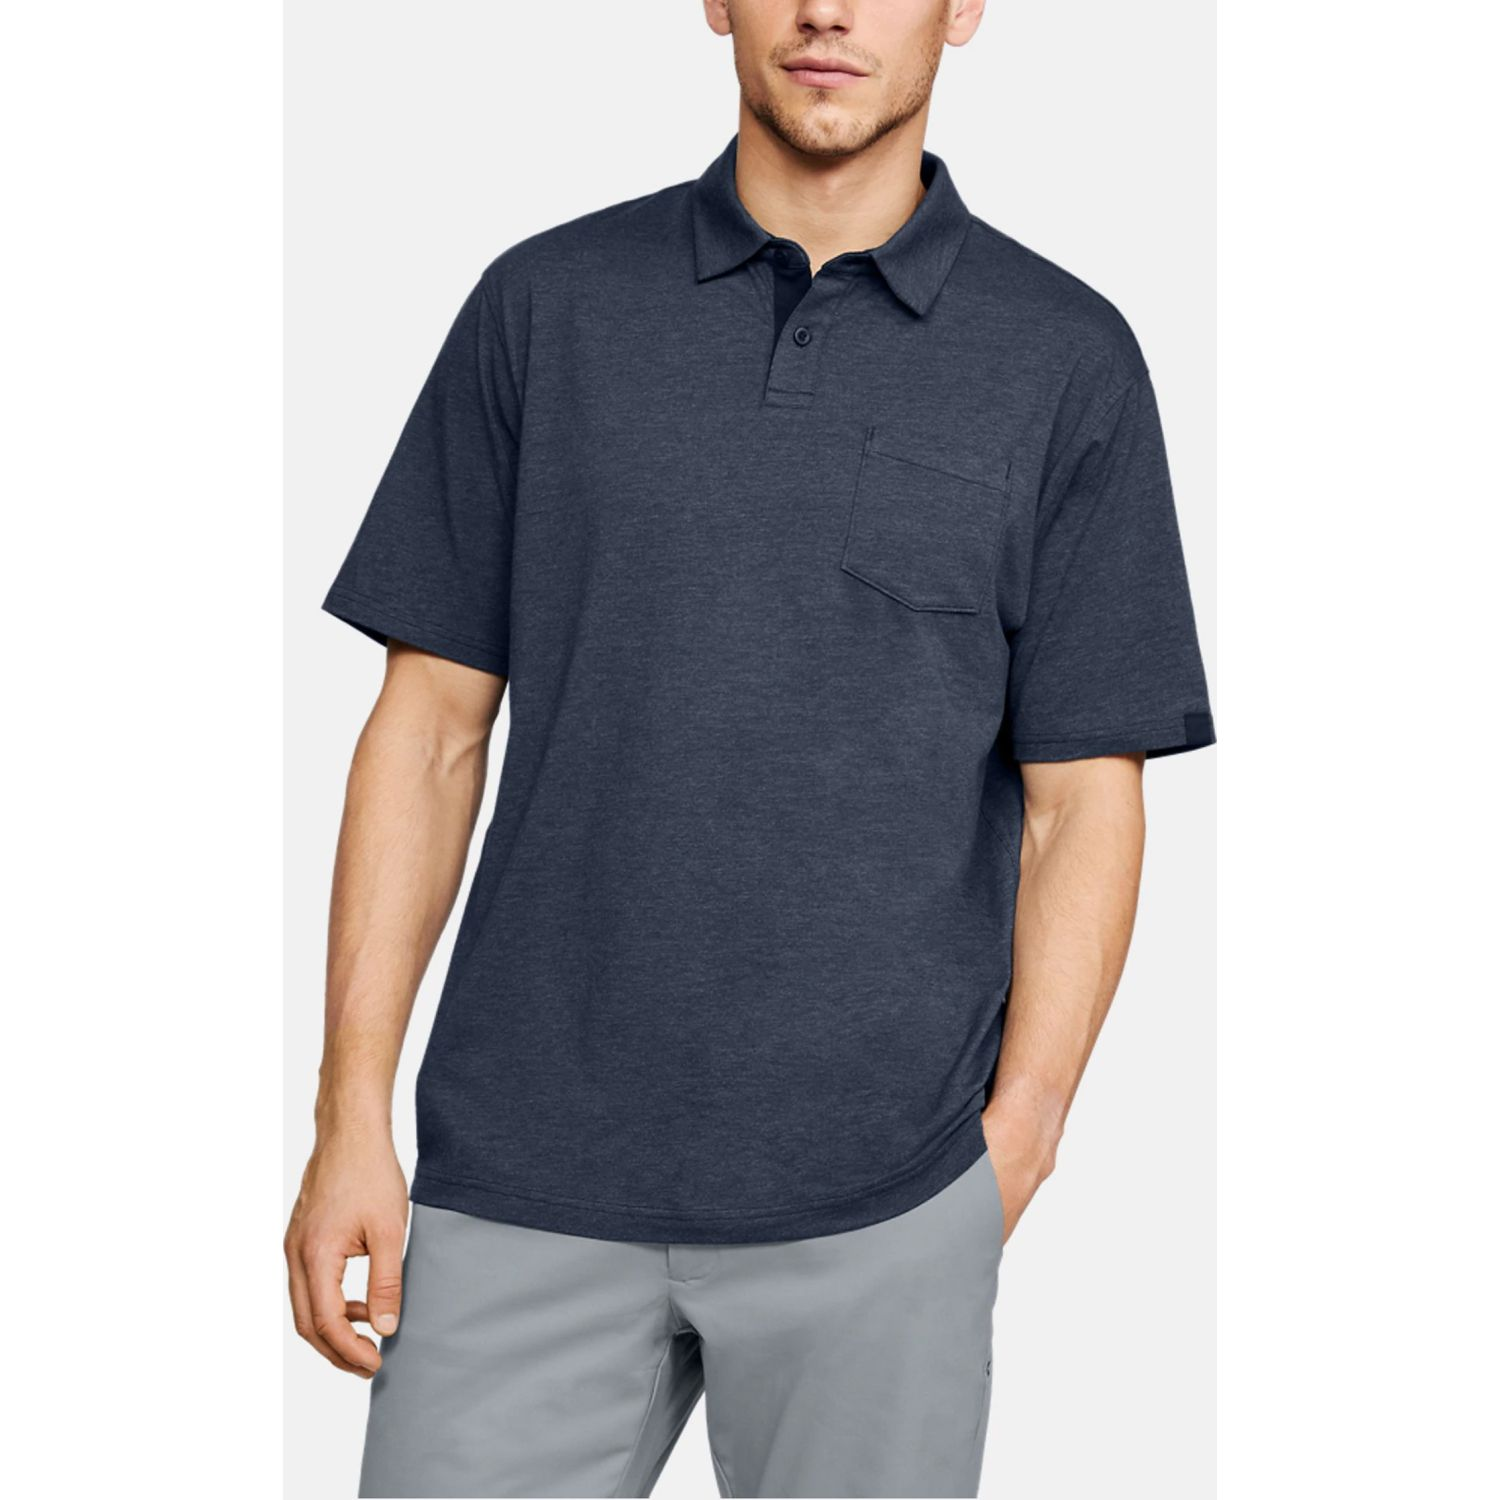 Under Armour CC Scramble Polo Navy Camisas de polo